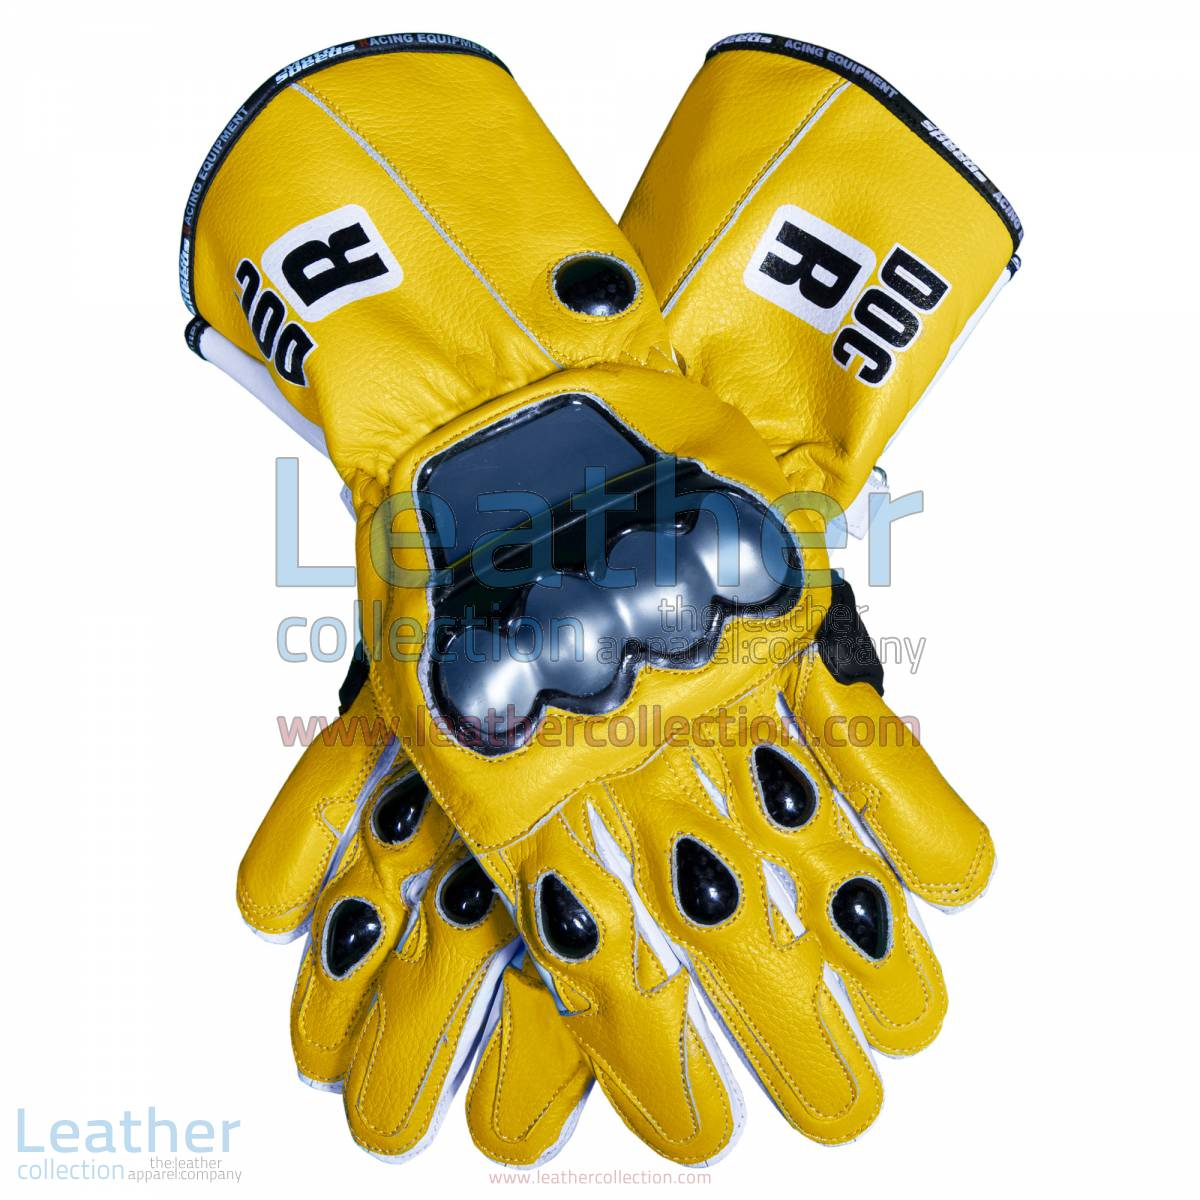 Valentino Rossi Yamaha MotoGP 2006 Racing Gloves | Valentino Rossi gloves,Valentino Rossi Yamaha MotoGP 2006 Racing Gloves